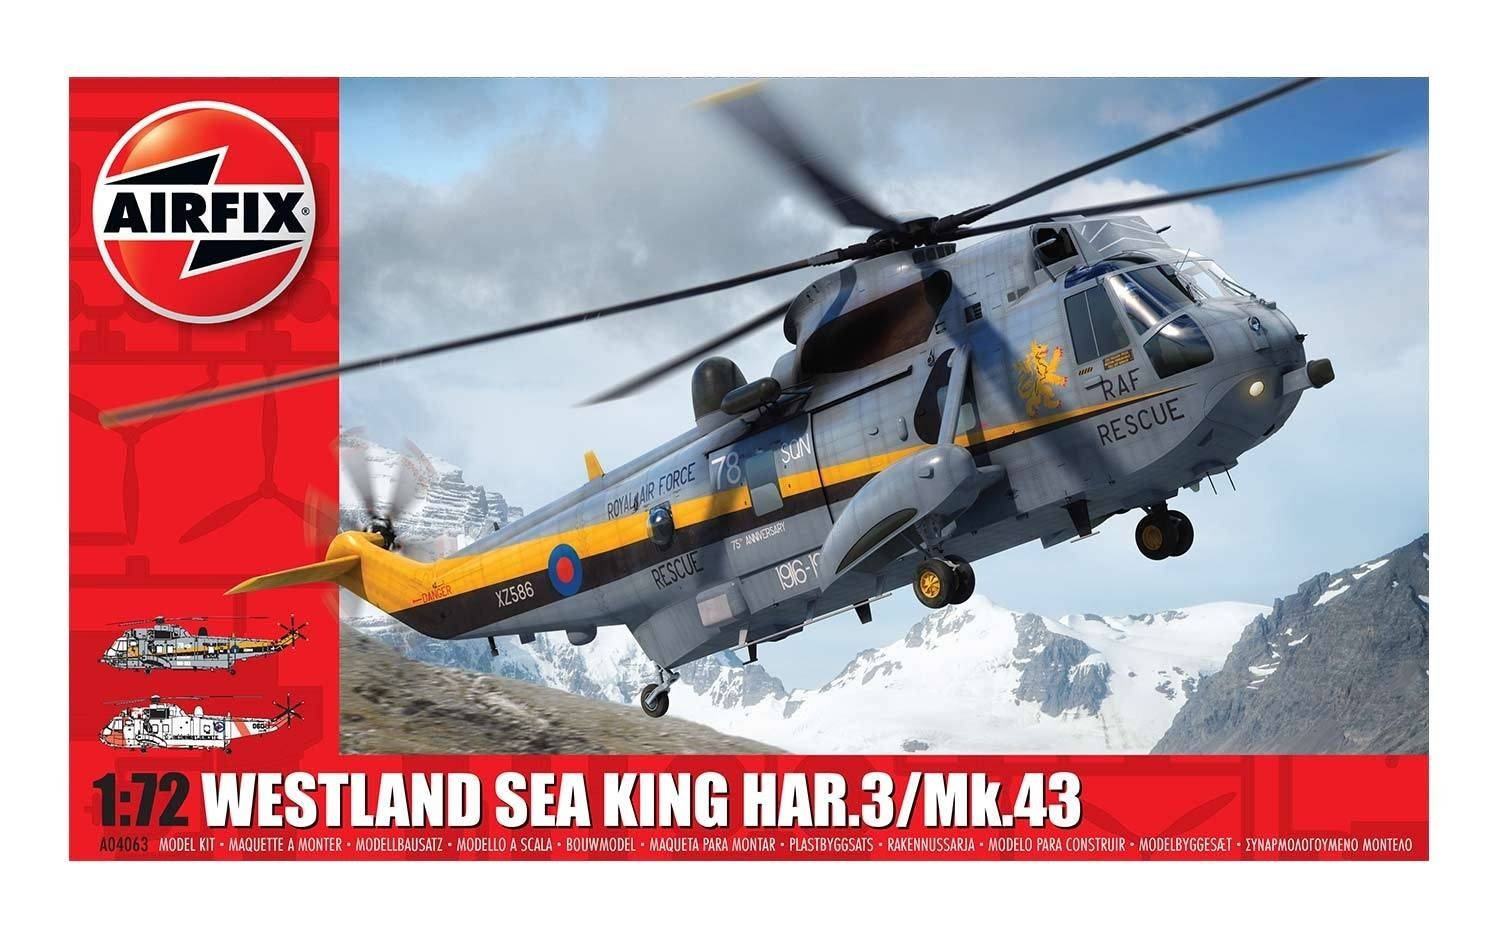 Westland Sea King HAR.3